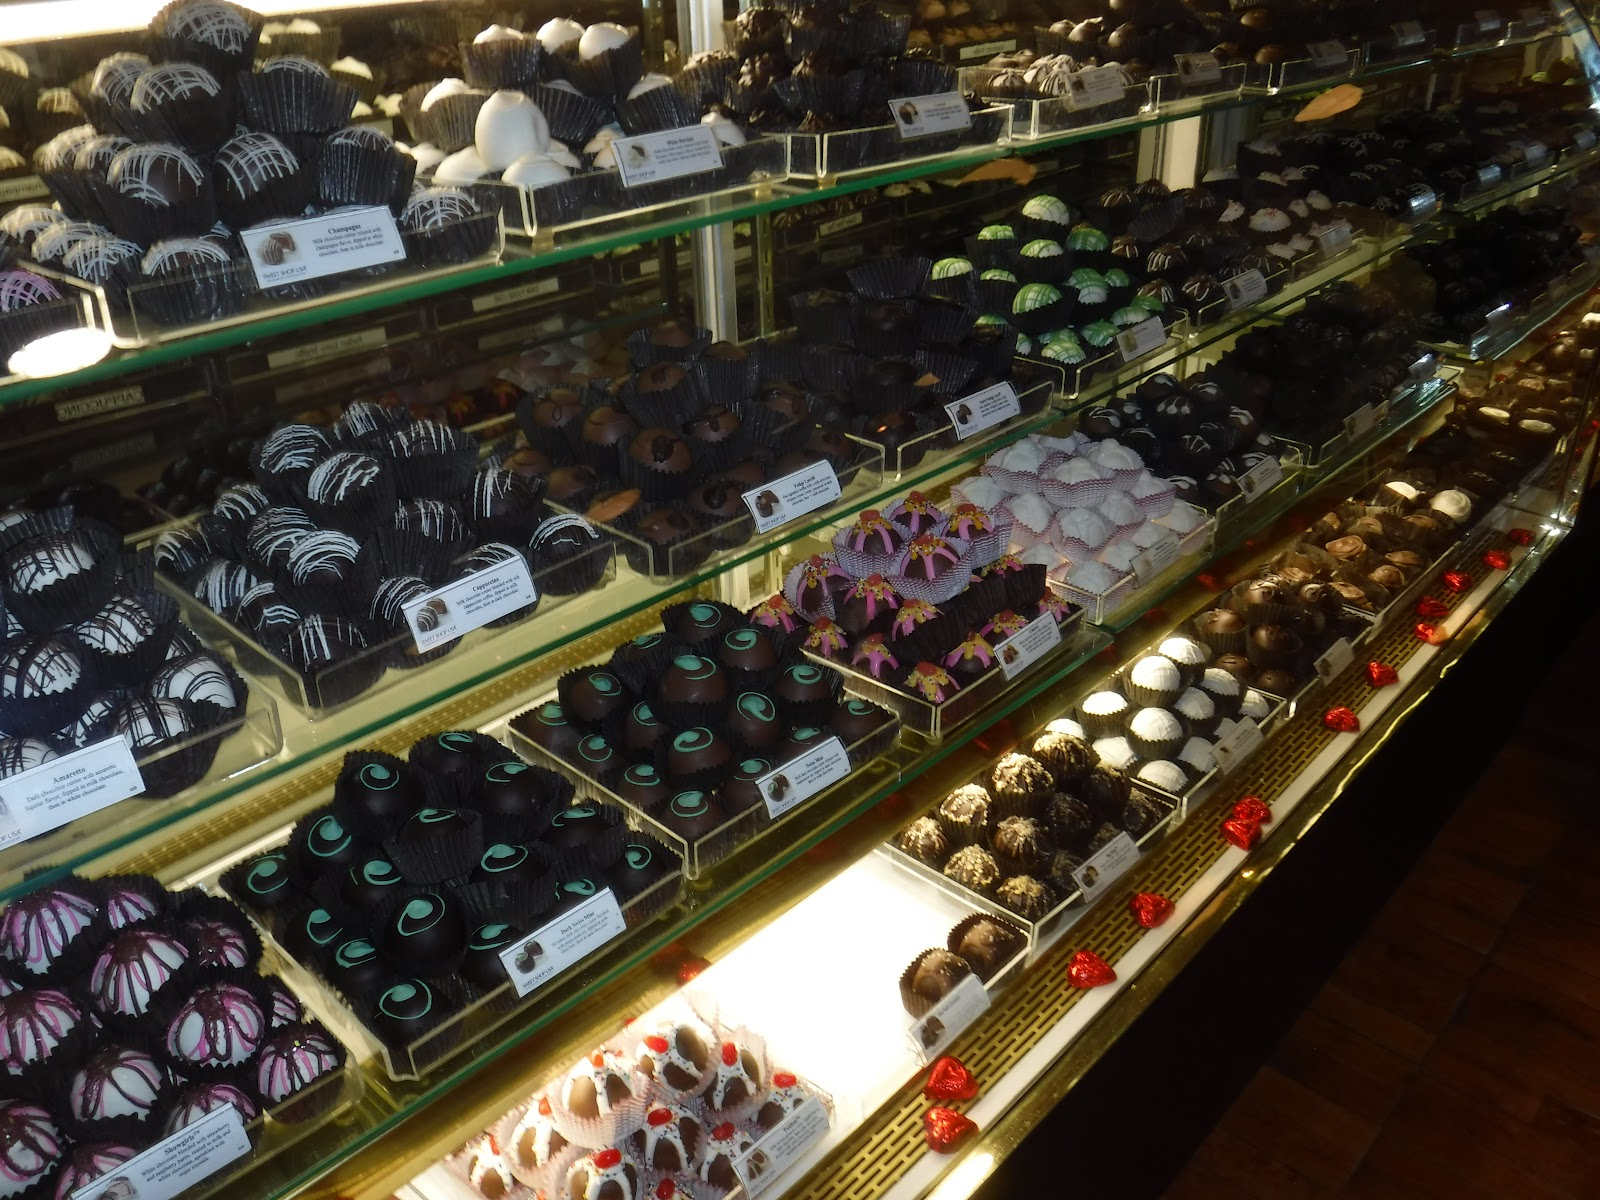 Things to do in Sioux City, Iowa - Buy treats at Palmer's Old Tyme Candy Shoppe